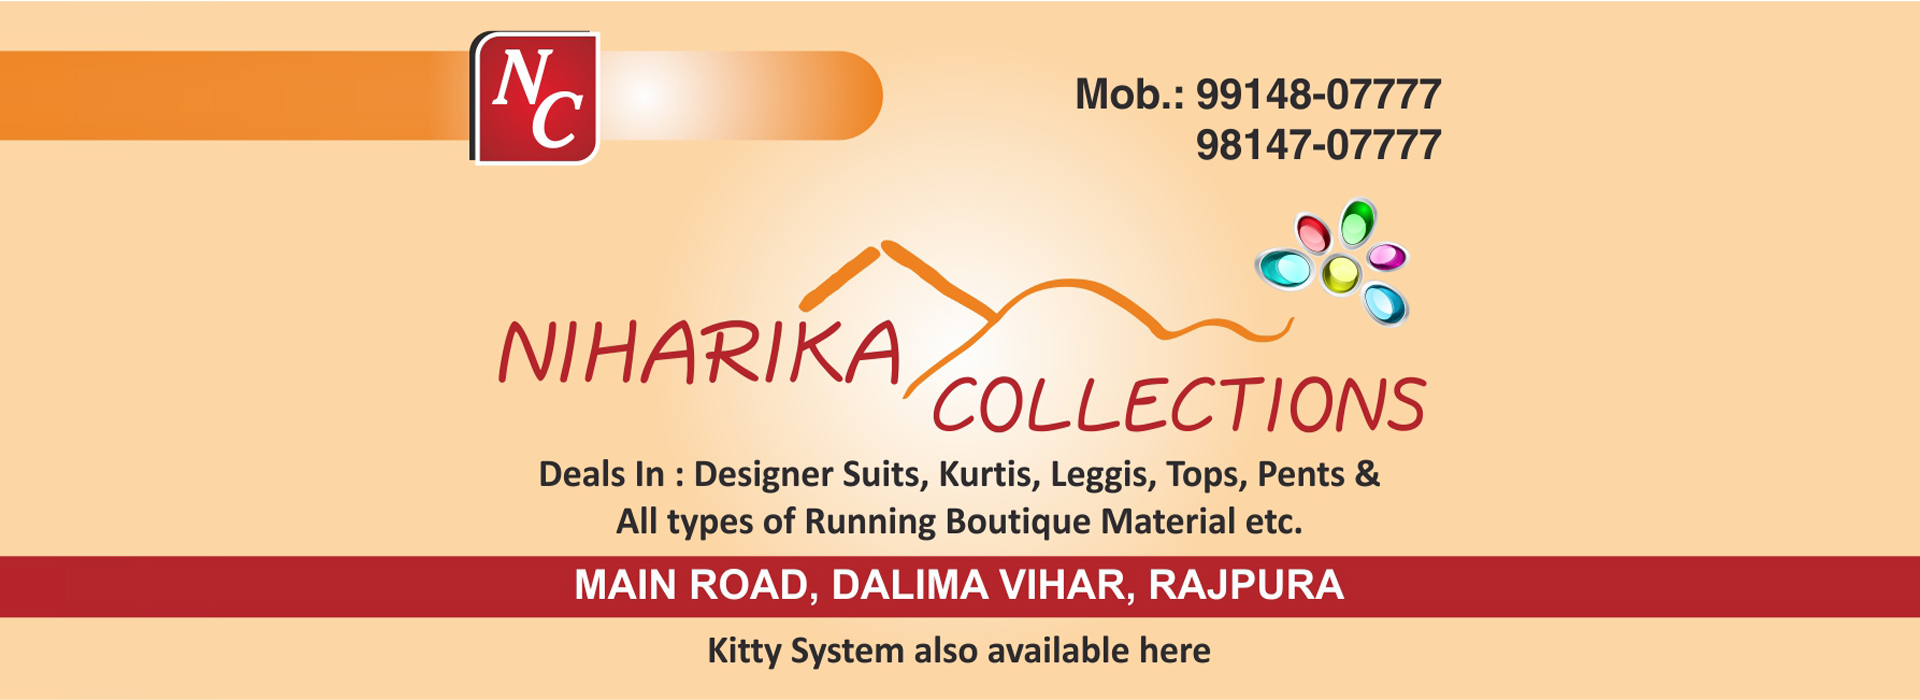 Rajpura No.1 free business listing site